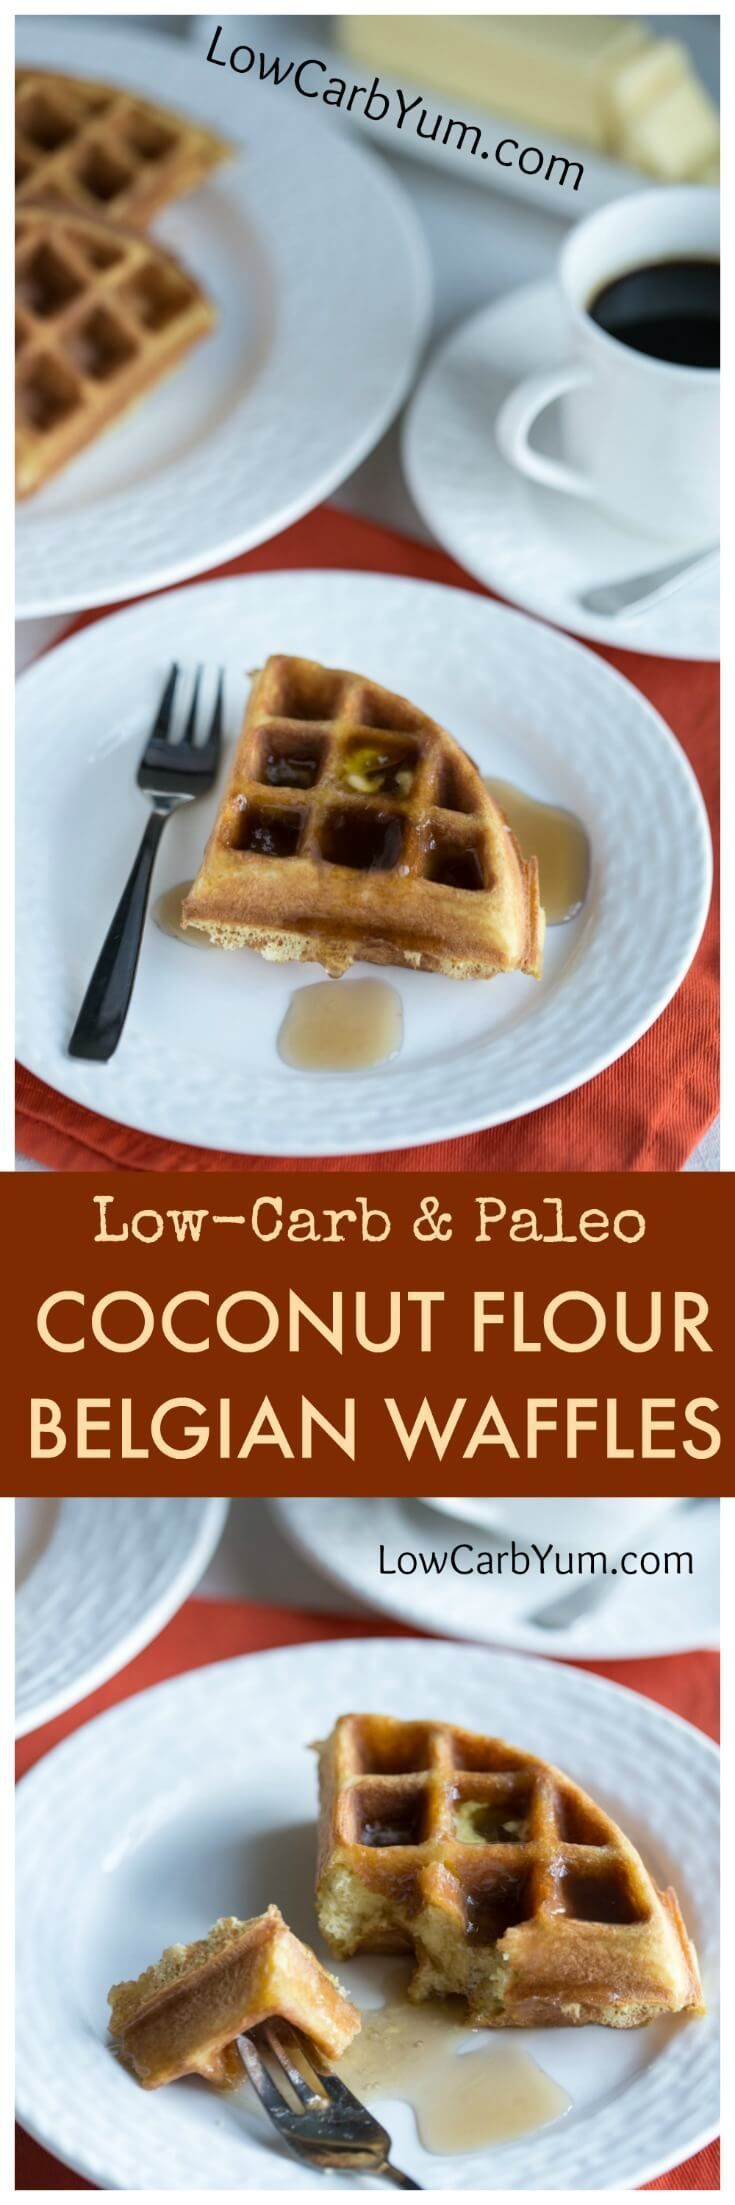 Scrumptious low carb paleo coconut flour waffles are easy to make. Just mix up the ingredients in a blender then pour in a Belgian waffle maker. | LowCarbYum.com